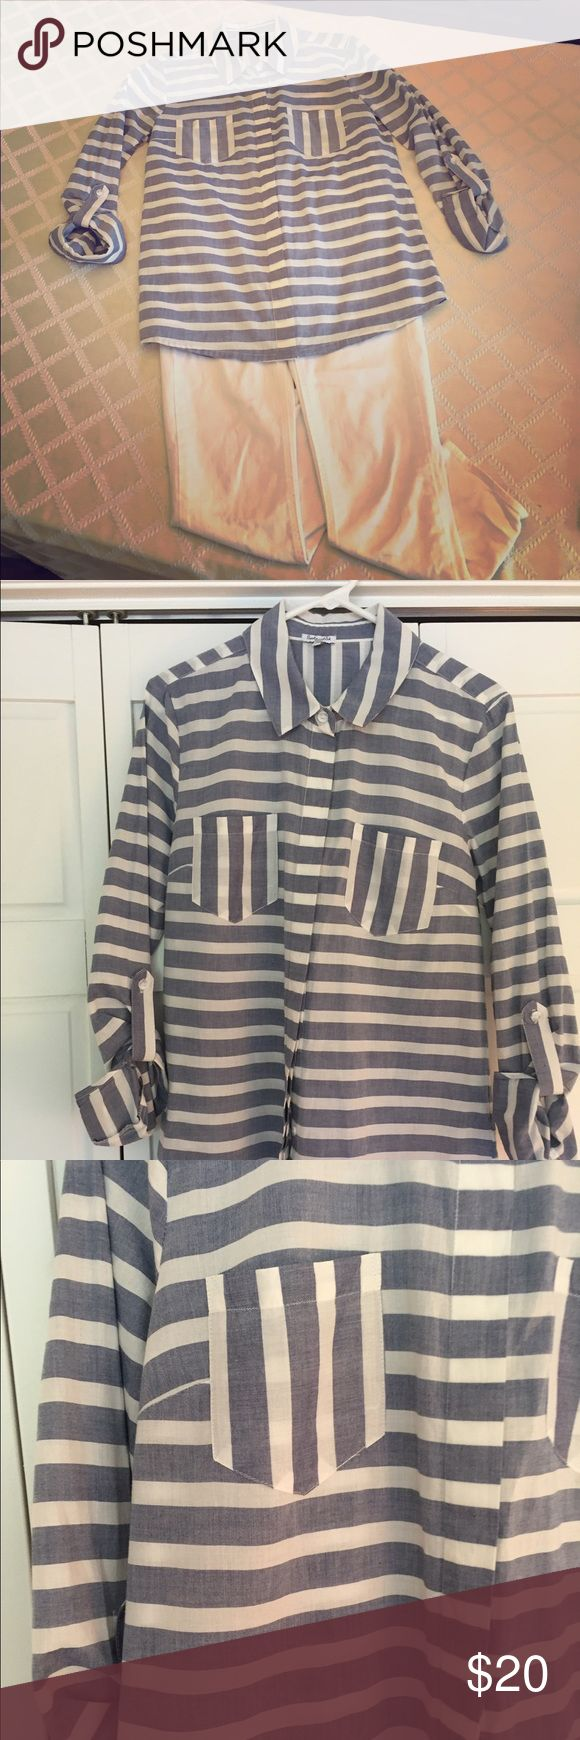 Splendid blue and white striped shirt Splendid blue and white striped shirt with hidden buttons. Hits mid to upper thigh. Perfect with white jeans or leggings! Splendid Tops Button Down Shirts